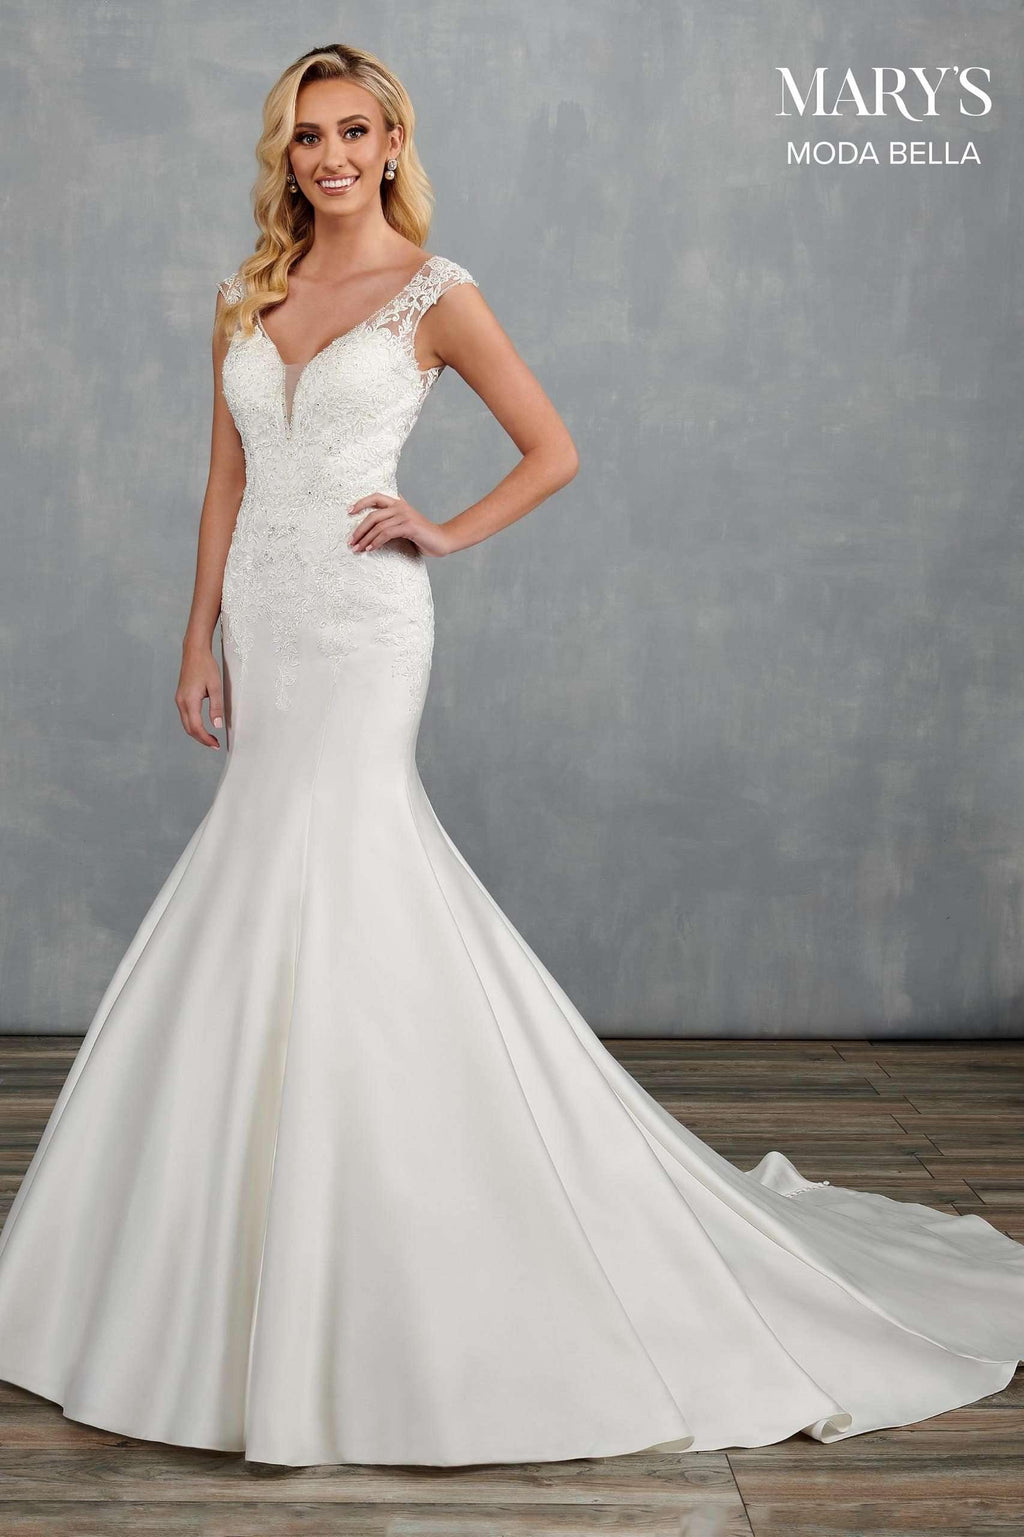 COMING SOON - MARY'S BRIDAL - Cheryl - Adore Bridal and Occasion Wear